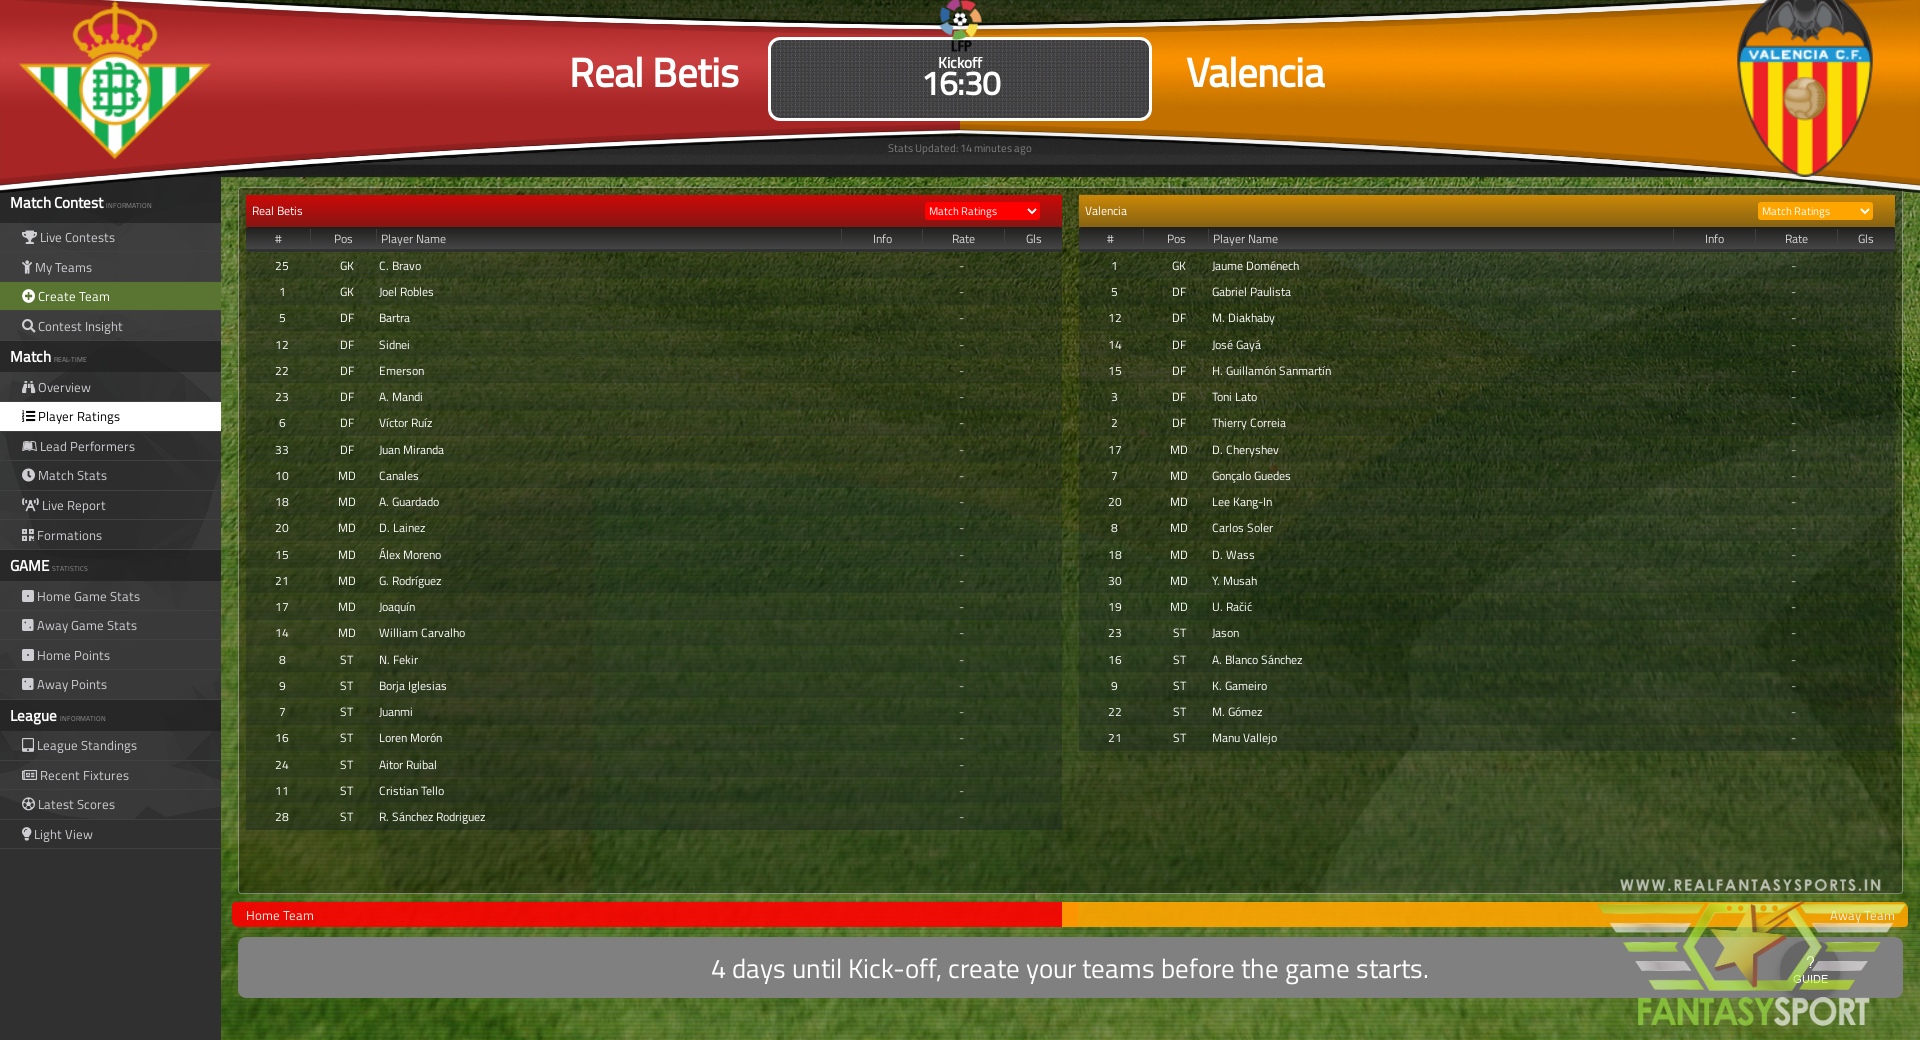 Fantasy Football Real Betis Vs Valencia Sunday 18th April 2021